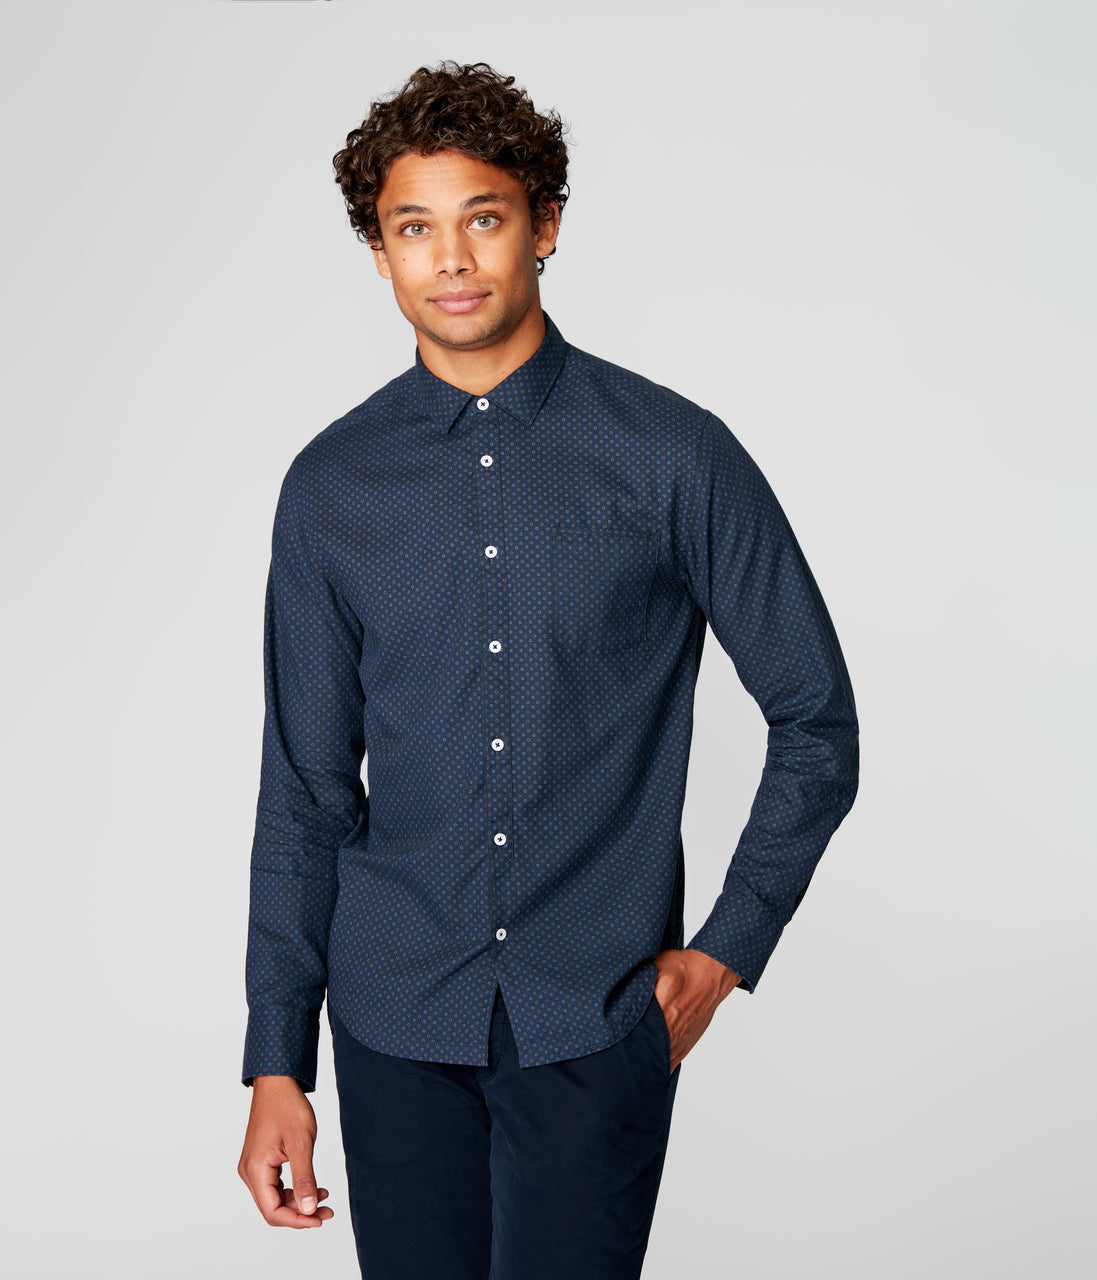 On-Point Print Shirt - Navy Falling Square Dot - Good Man Brand - On-Point Print Shirt - Navy Falling Square Dot